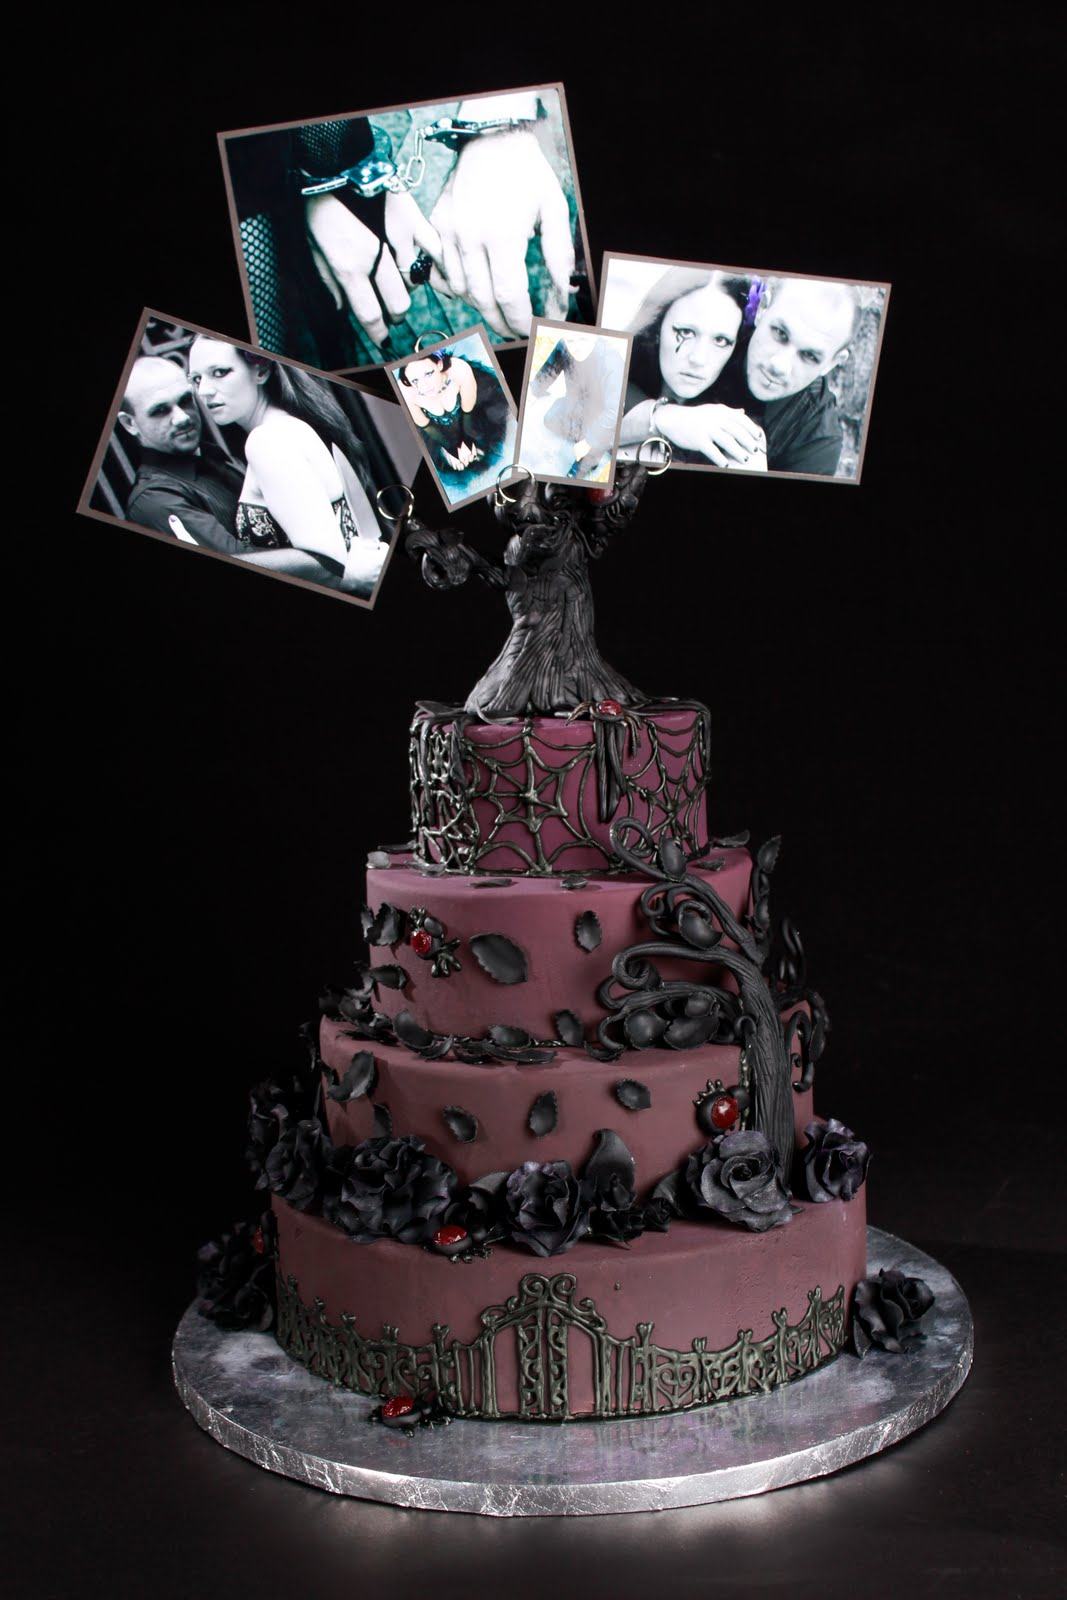 Keepsake Cakes And Pastries Gothic Wedding Cake